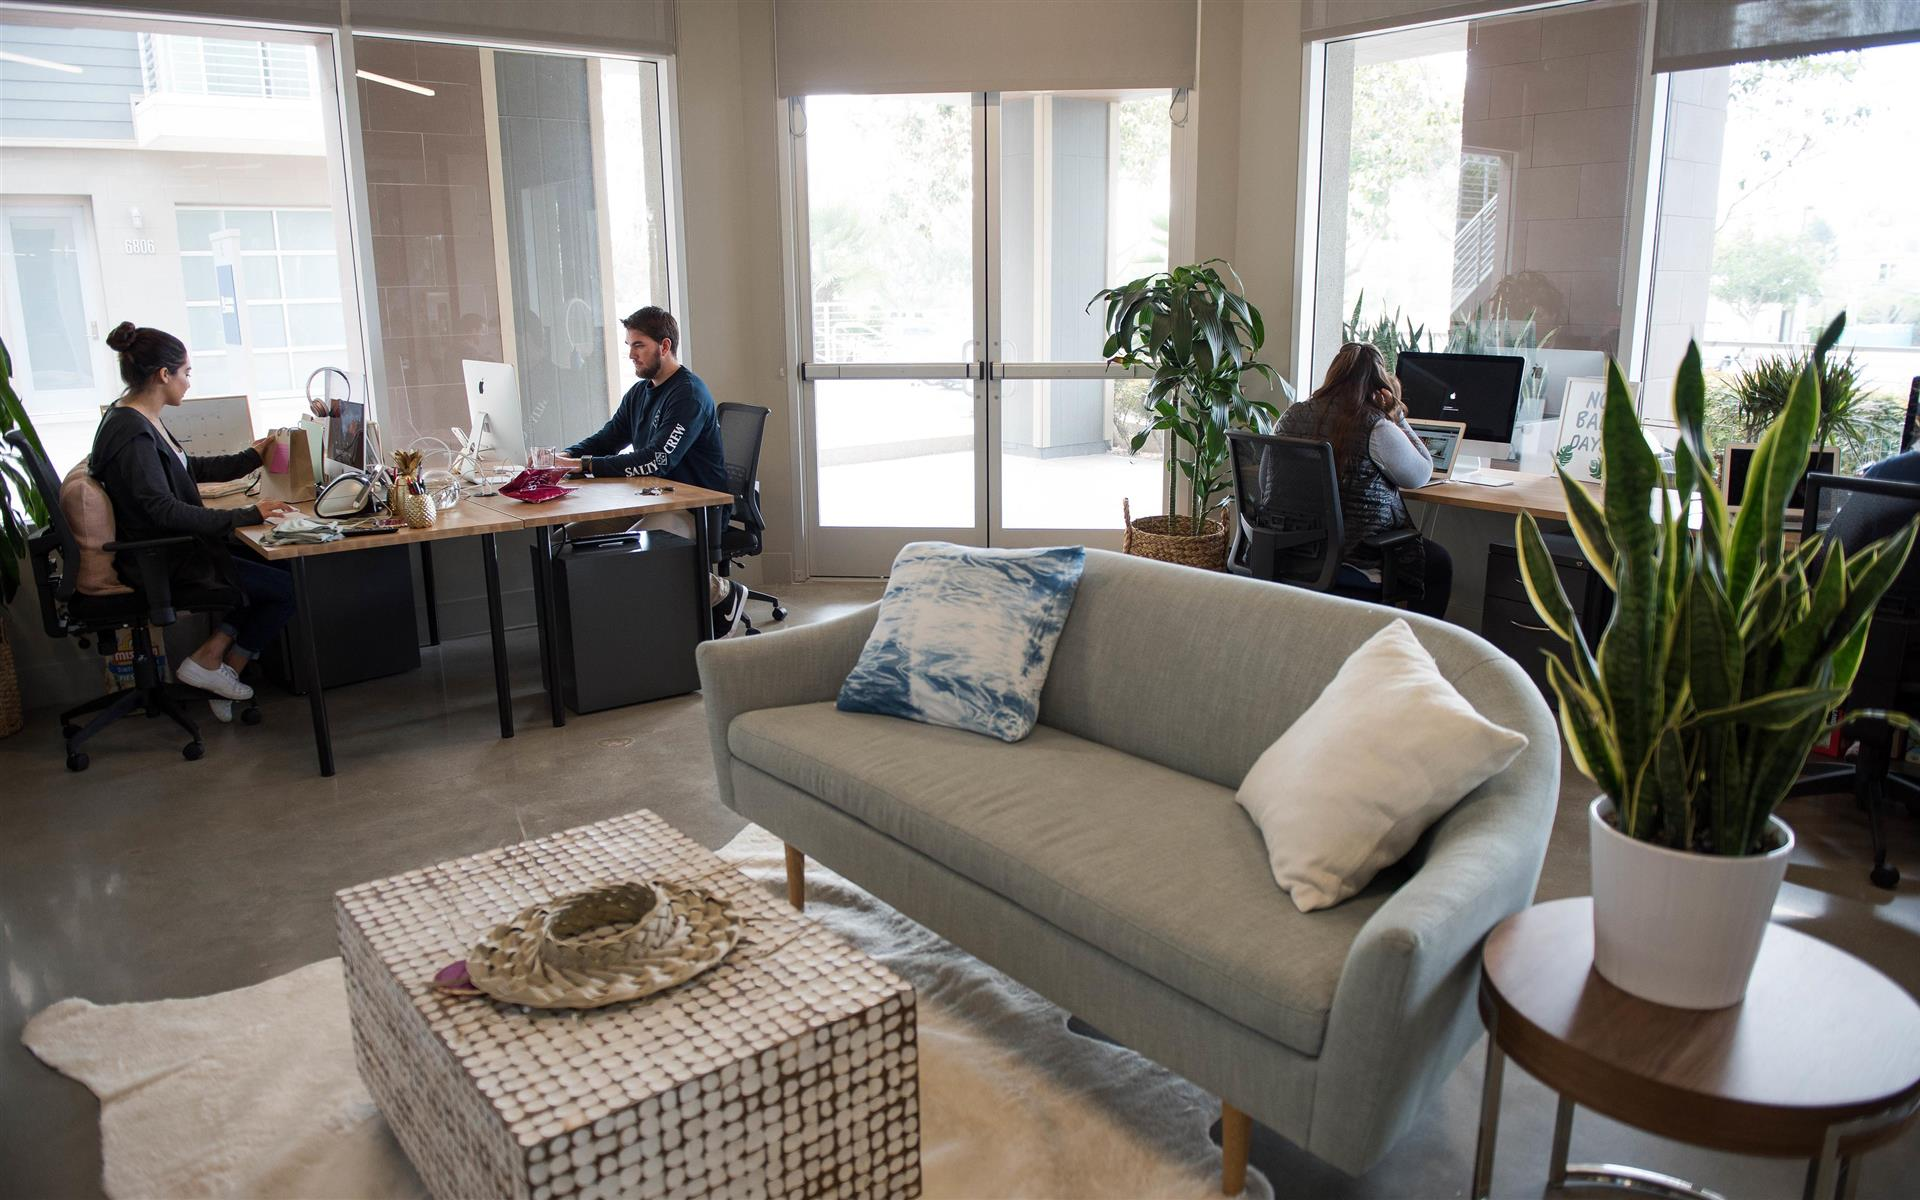 Carlsbad - CommonGrounds Workspace - Anchor Space   8-10 person